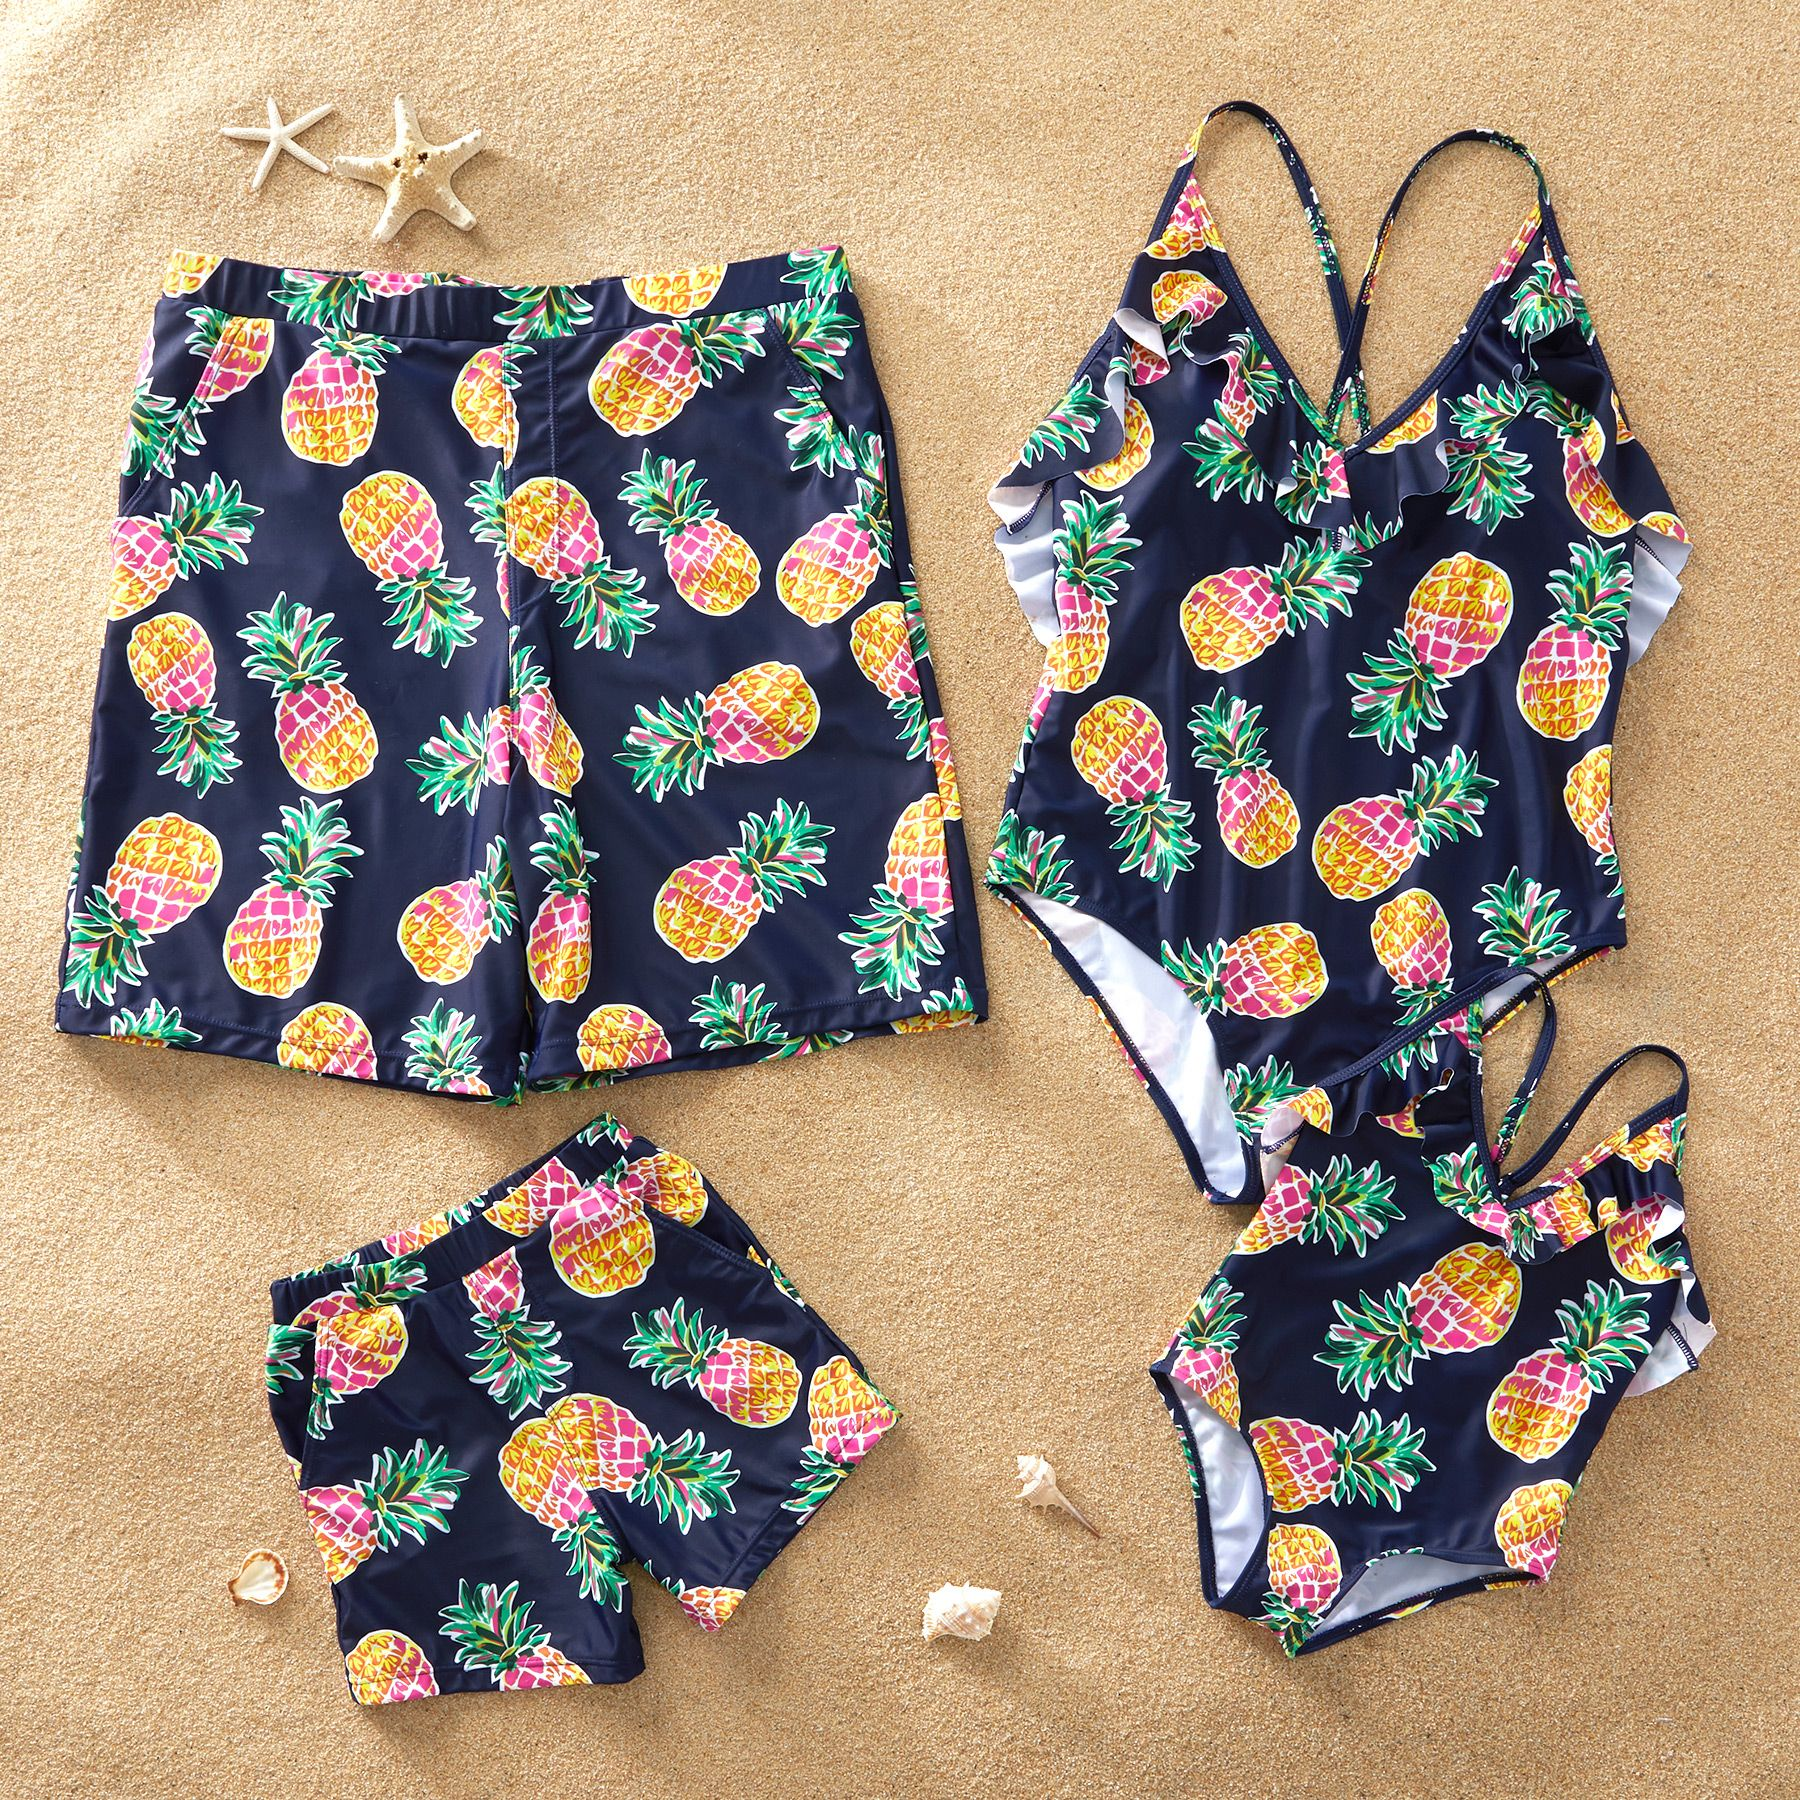 Yaffi Family Swimwear Newest One Piece Hollow Out Bathing Suit Pineapple Bowknot